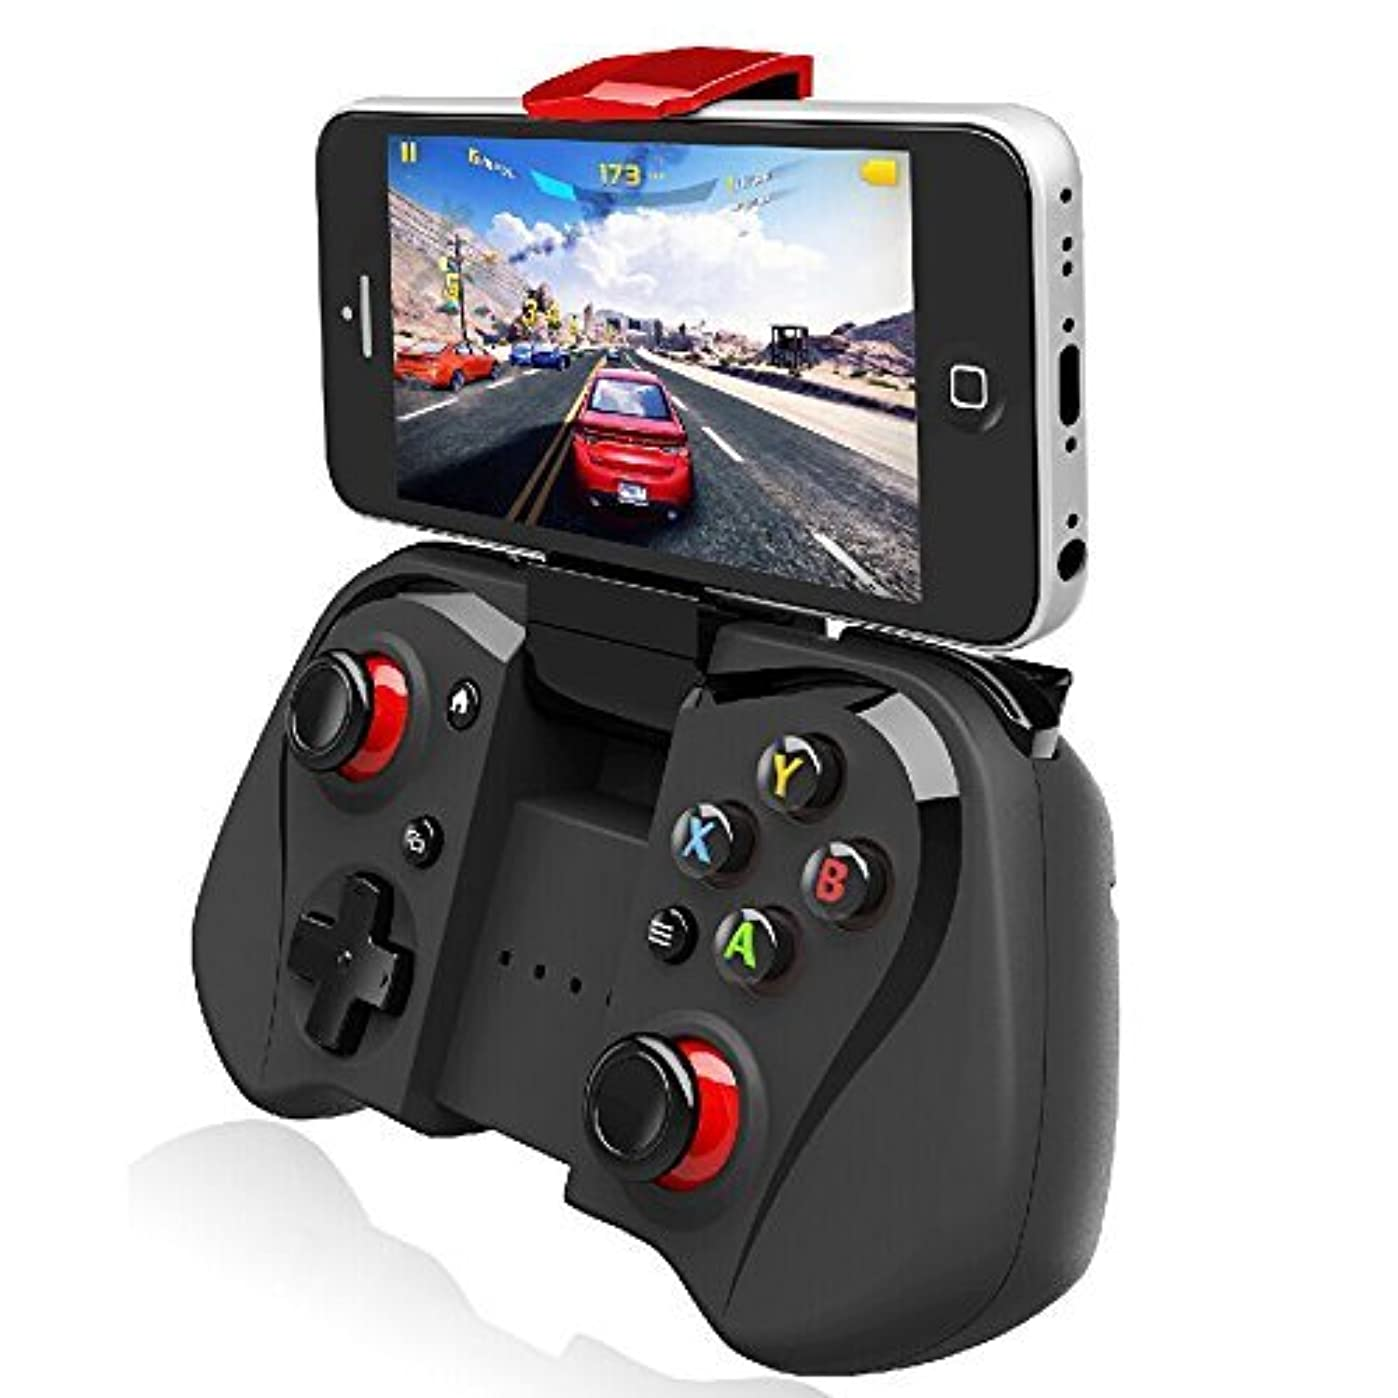 許される待って海上Megadream? Telescopic Wireless Bluetooth 3.0 Game Gaming Controller Gamepad Joystick For Android Smartphone Tablet PC and Laptop Computer - Support Windows 8 7 XP System & Android TV box / Android TV by Megadream [並行輸入品]